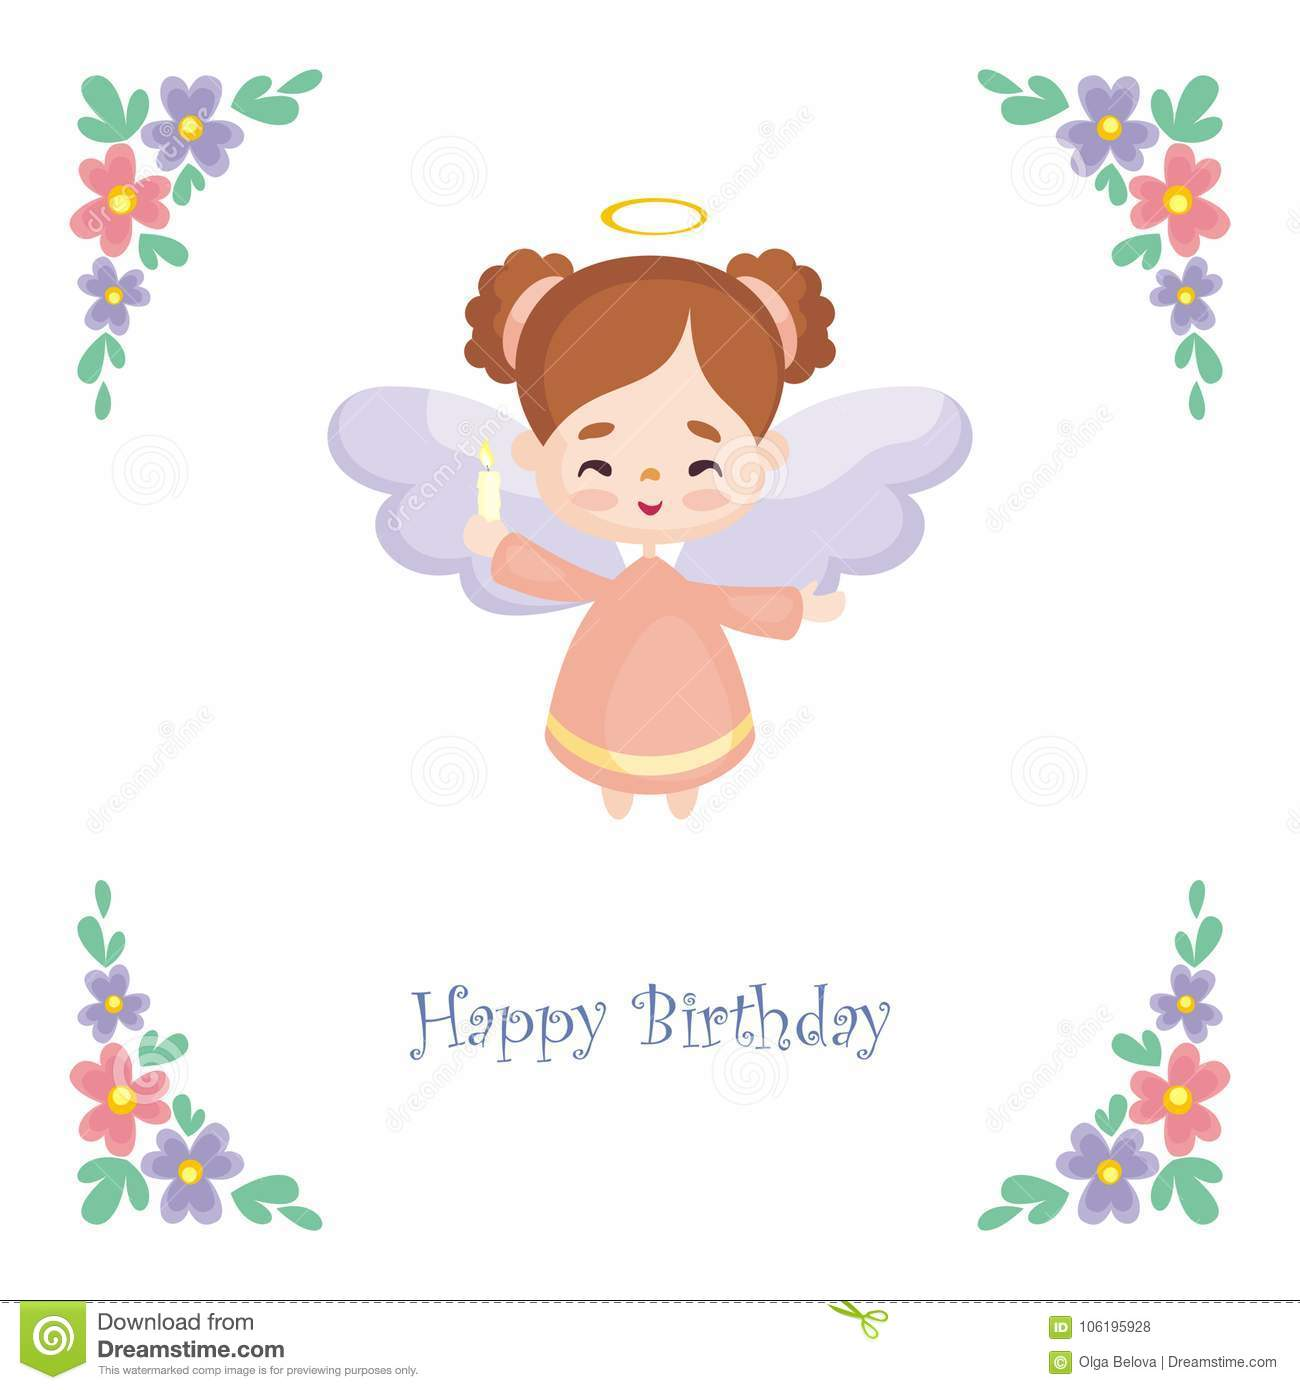 Birthday Card With Cute Angel Stock Vector Illustration Of Girl